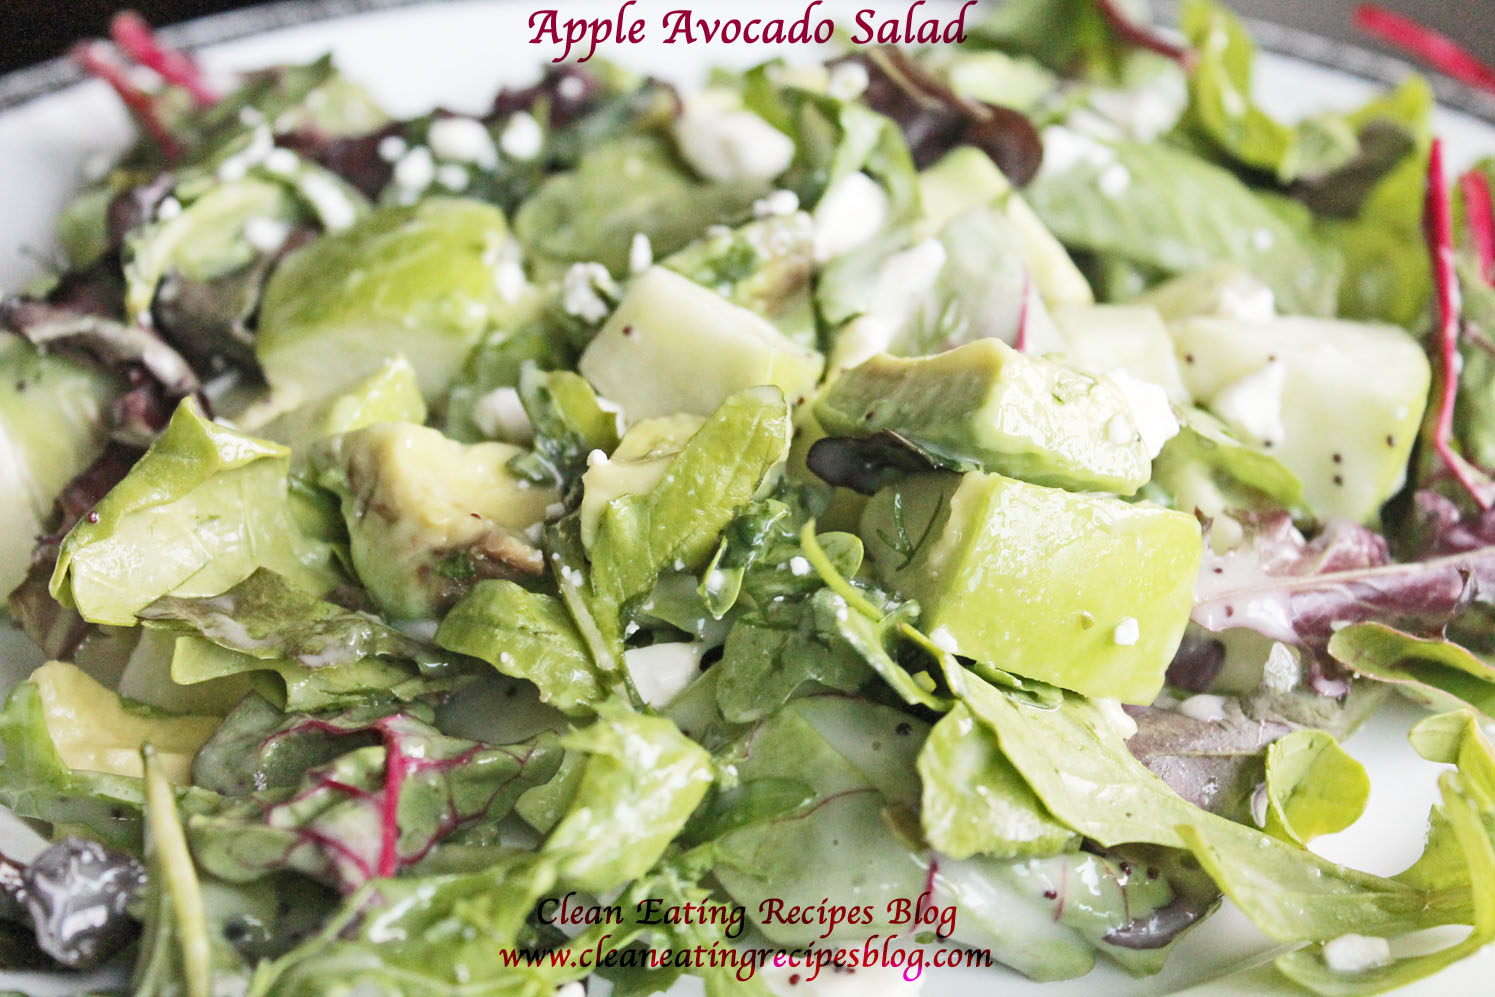 Easy Healthy Recipe – Clean Eating Apple Avocado Salad